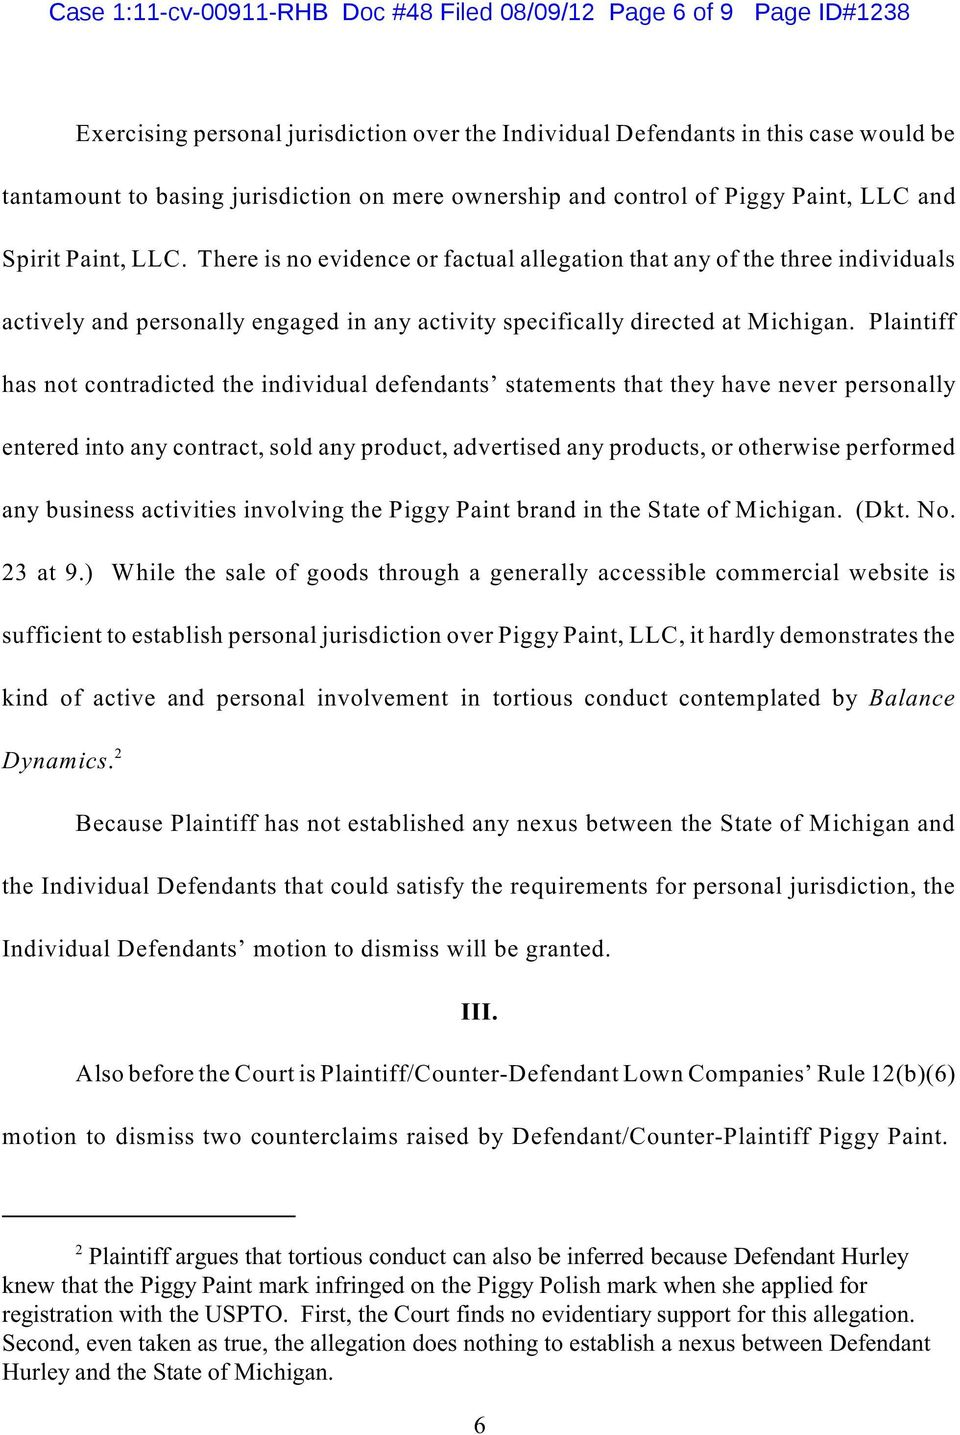 There is no evidence or factual allegation that any of the three individuals actively and personally engaged in any activity specifically directed at Michigan.